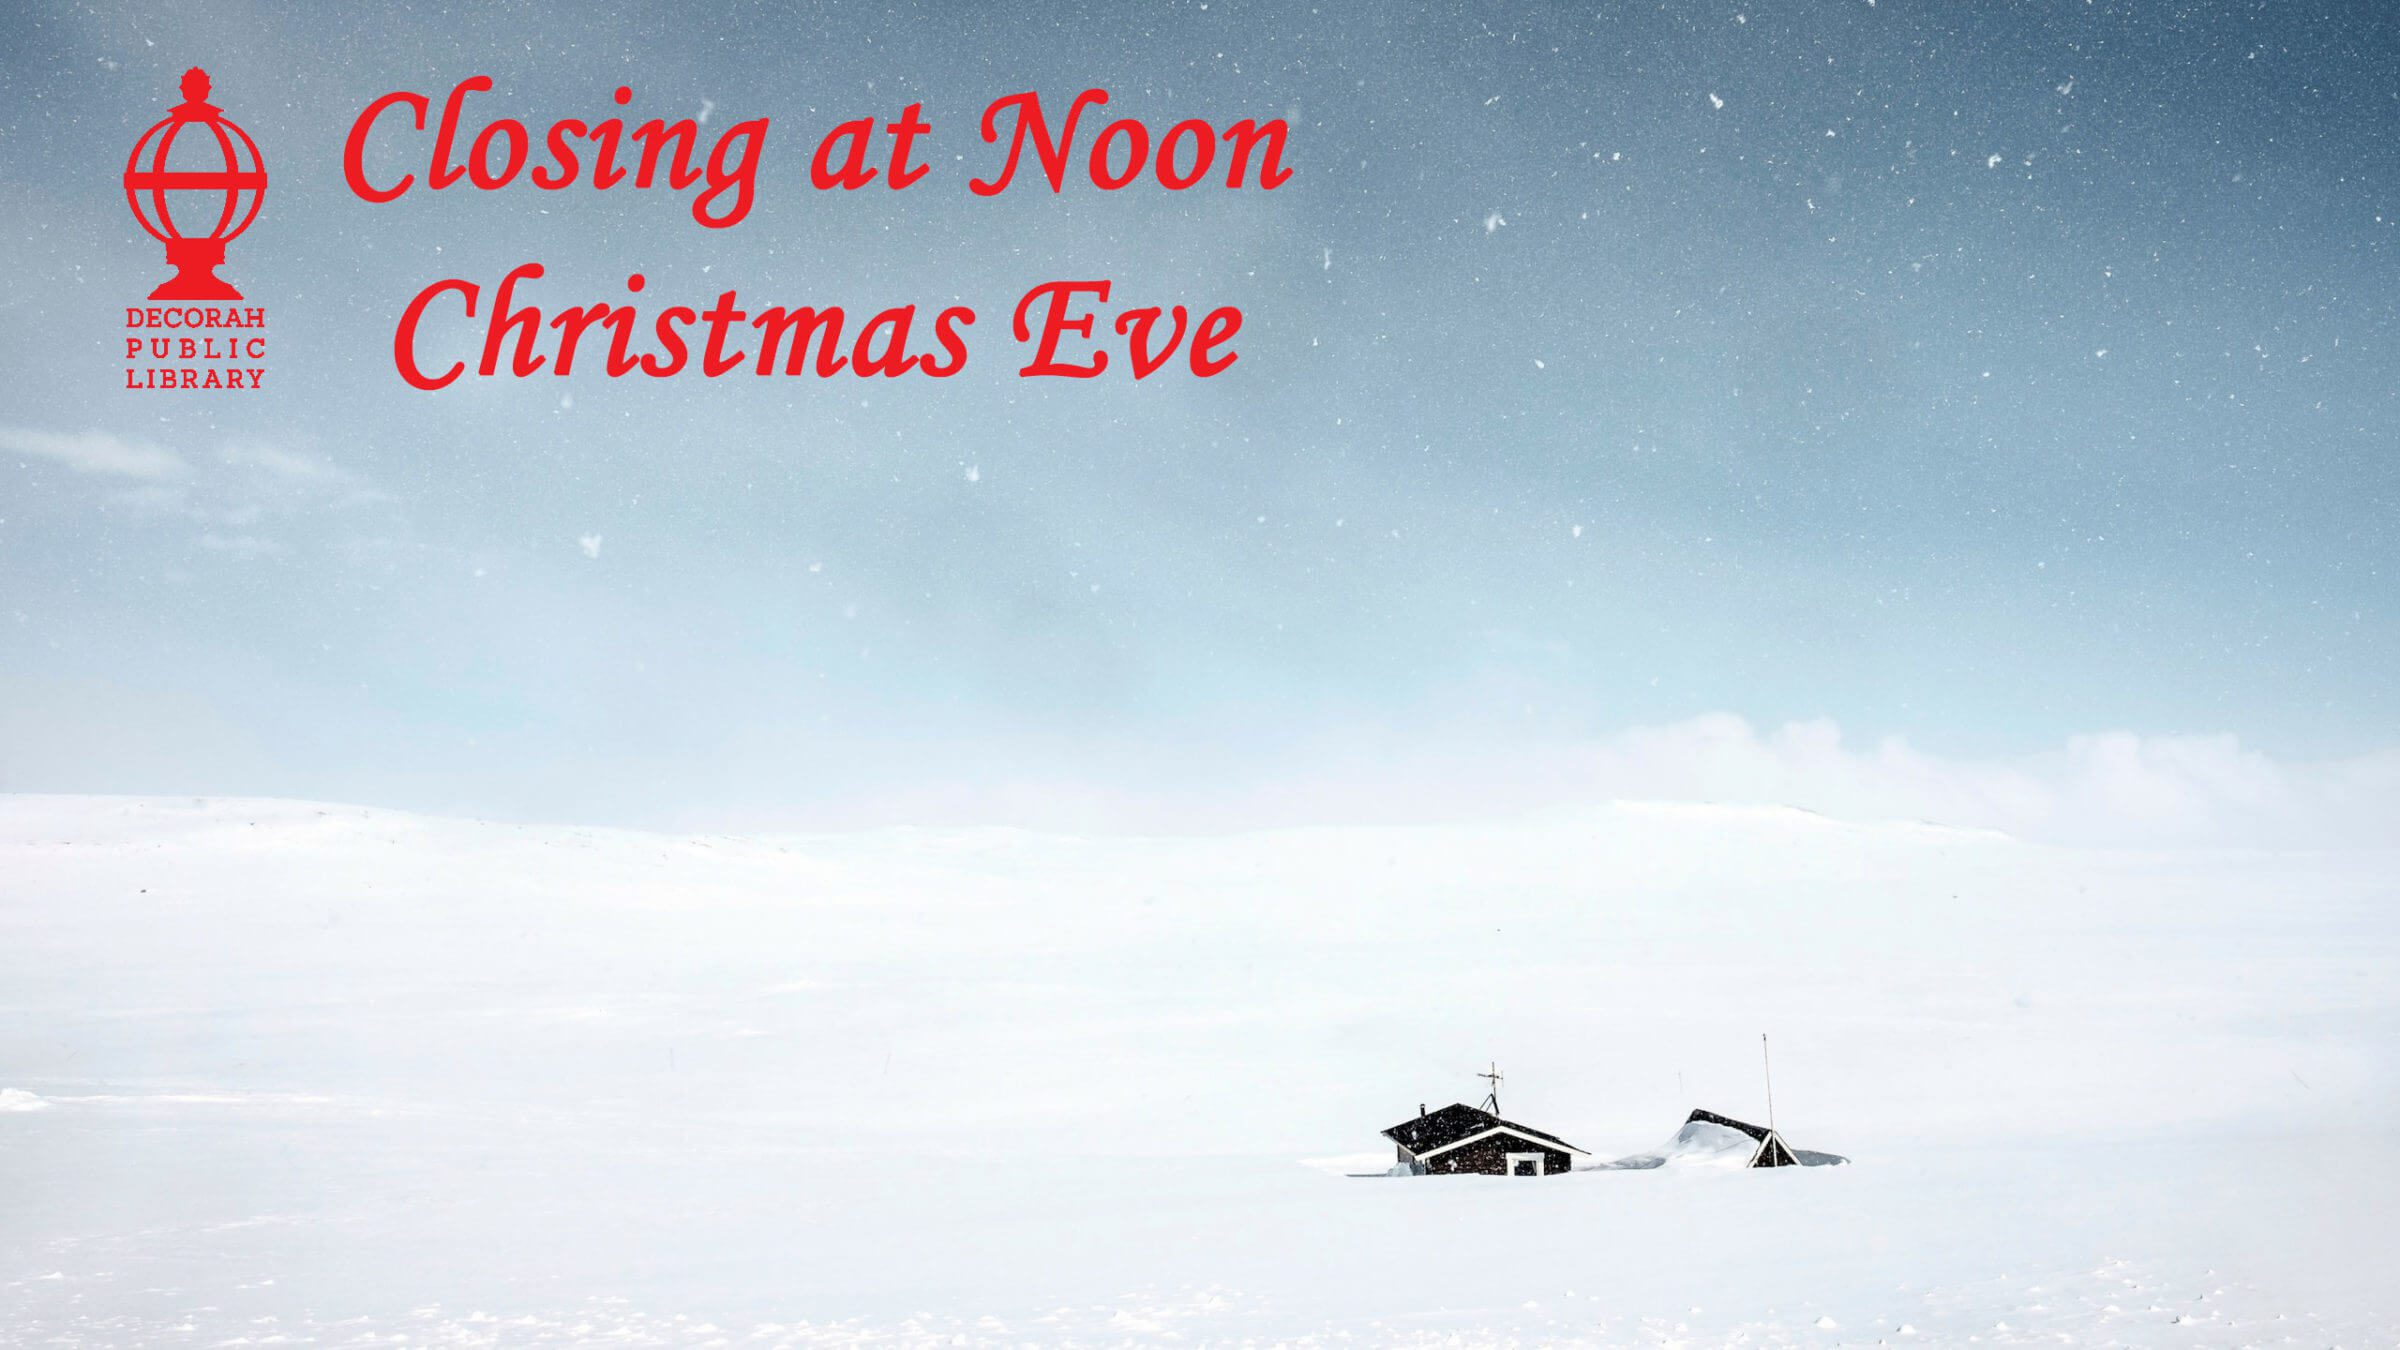 Closing at Noon Christmas Eve